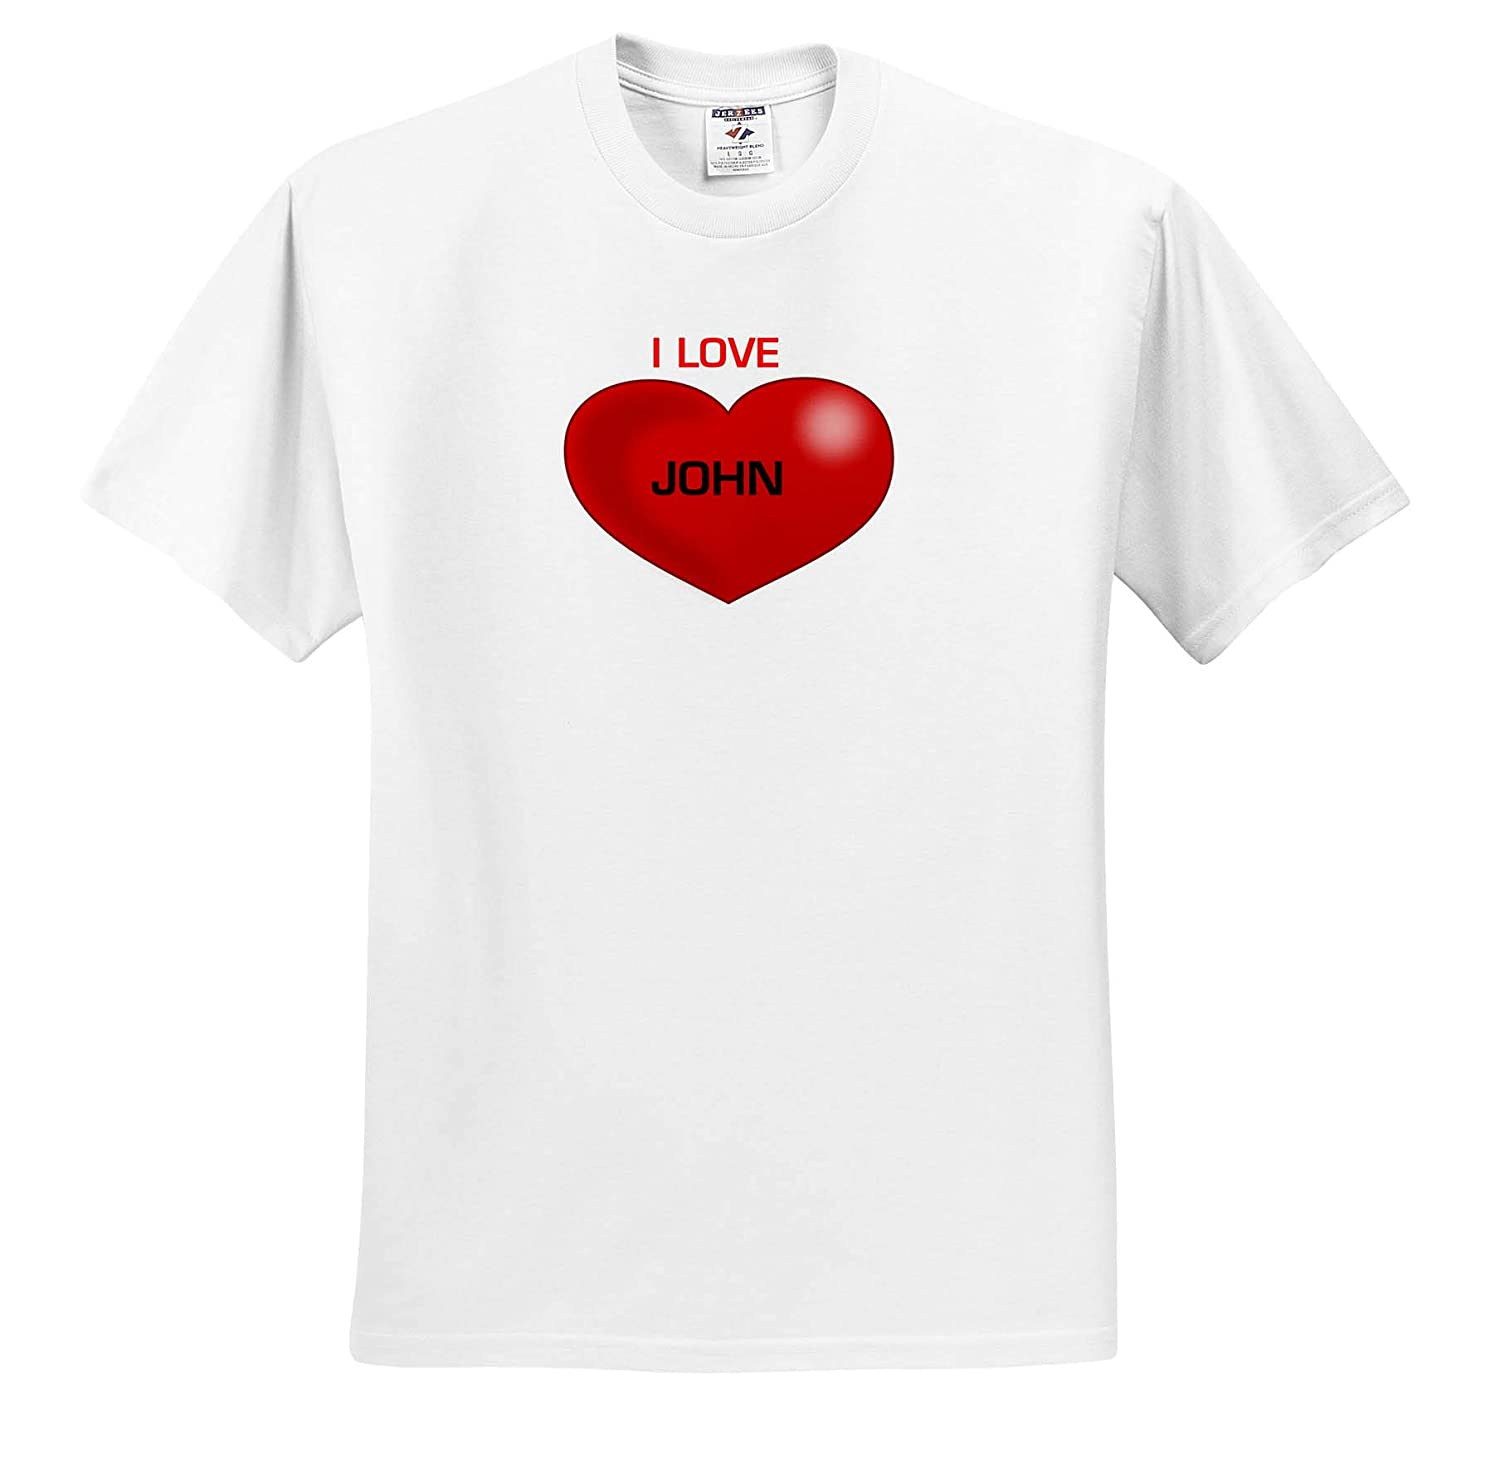 T-Shirts Image of I Love John On Big Red Heart 3dRose Lens Art by Florene Love Hearts with Names